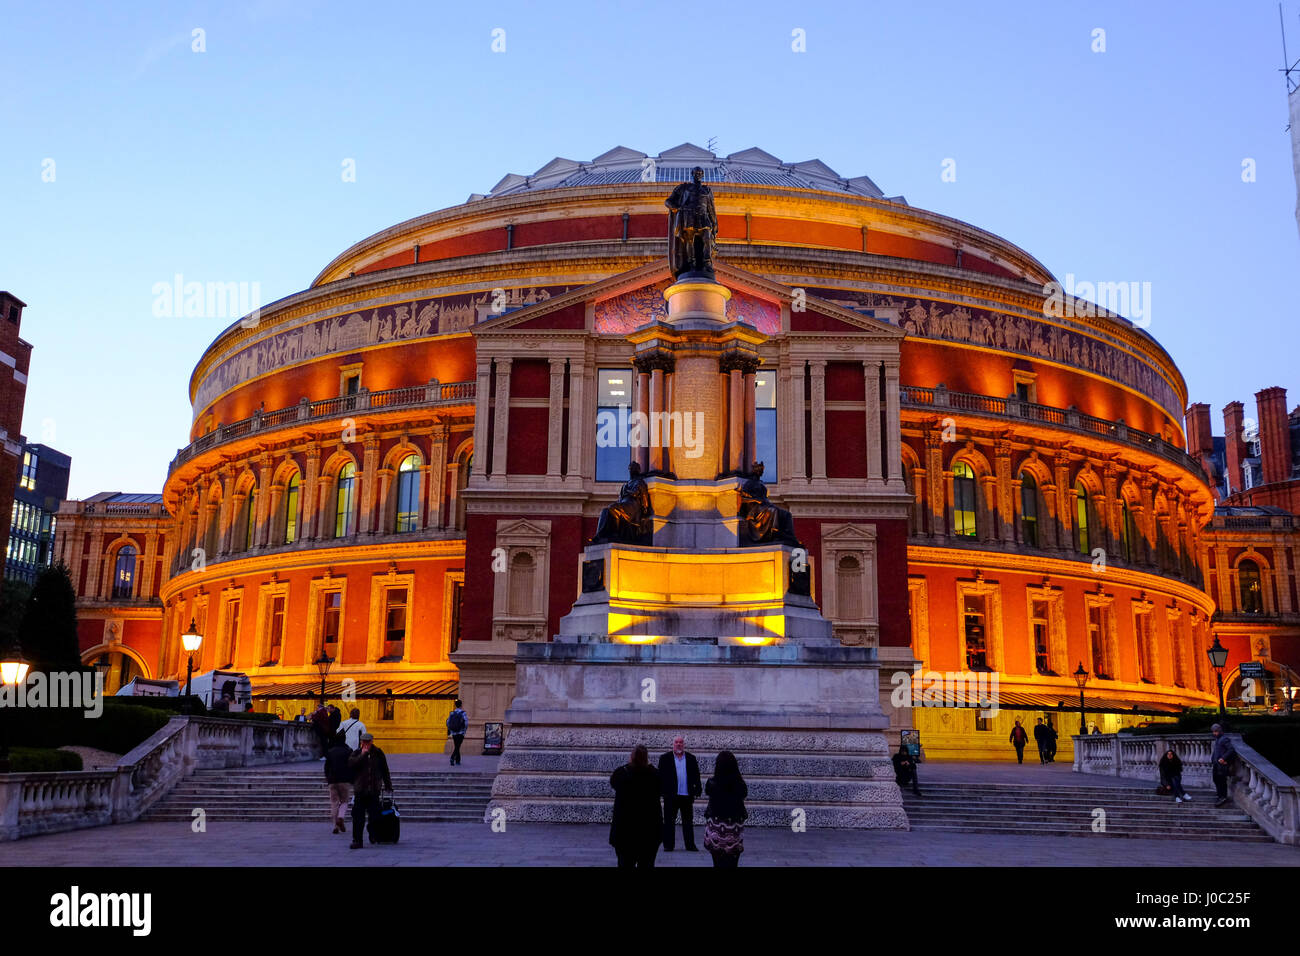 Royal Albert Hall, Kensington, Londres, Inglaterra, Reino Unido. Imagen De Stock